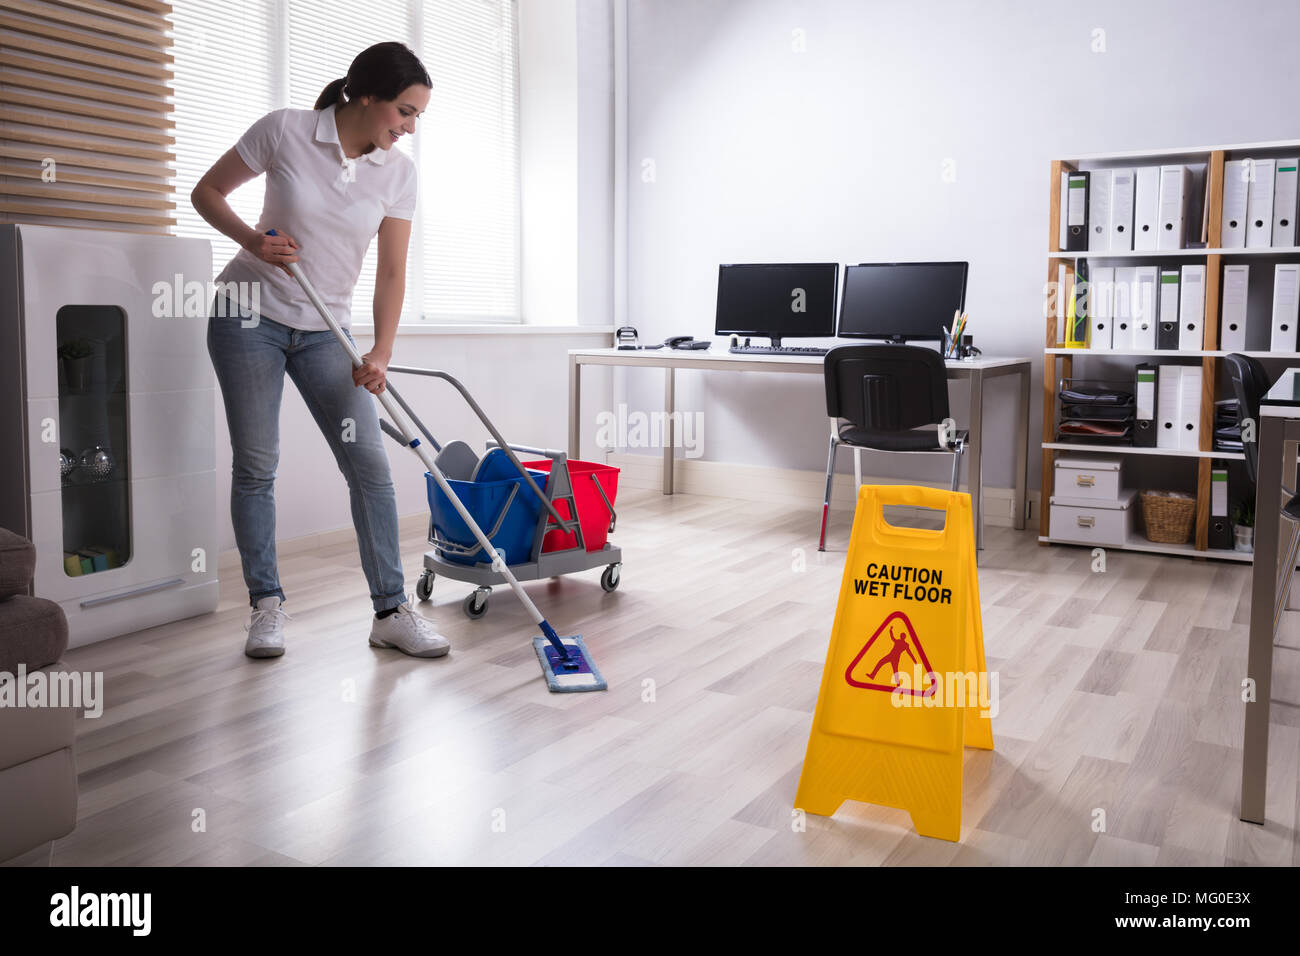 caution wet floor sign on stockfotos caution wet floor sign on bilder alamy. Black Bedroom Furniture Sets. Home Design Ideas